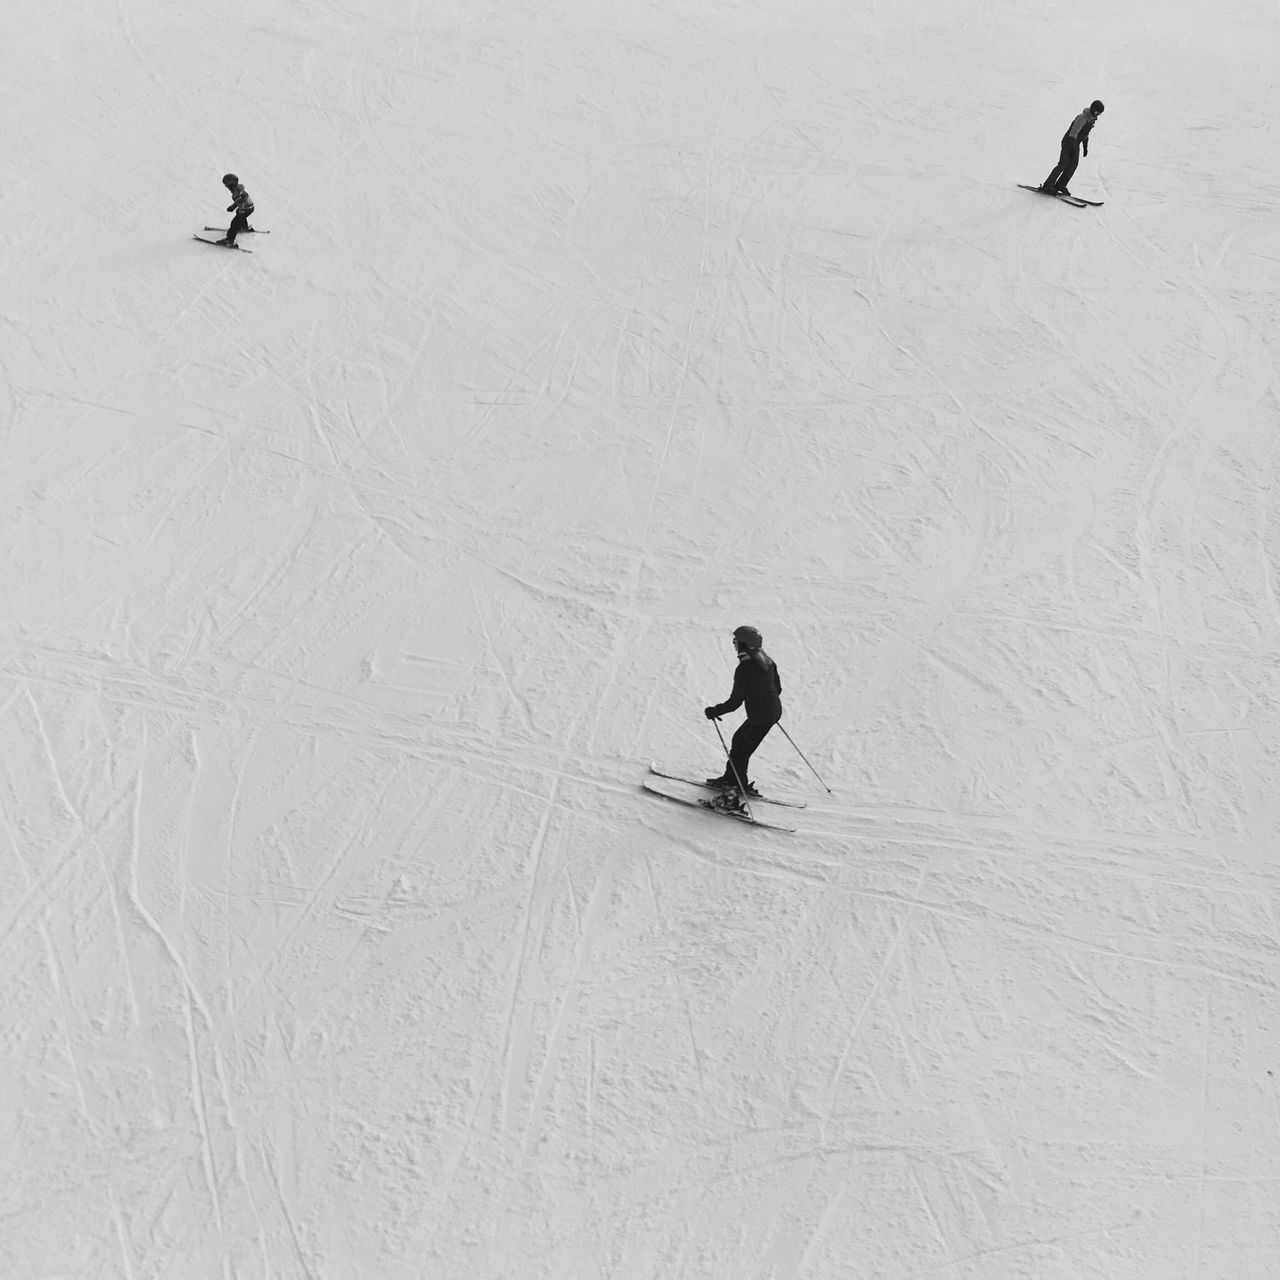 Snow Winter Skiing Leisure Activity Ski Holiday Ski Track Winter Sport Outdoors Sport Lifestyles Winter Wonderland Winter Landscape Fresh Tracks Three Skiers Which Way? Which Way To Go? Black And White